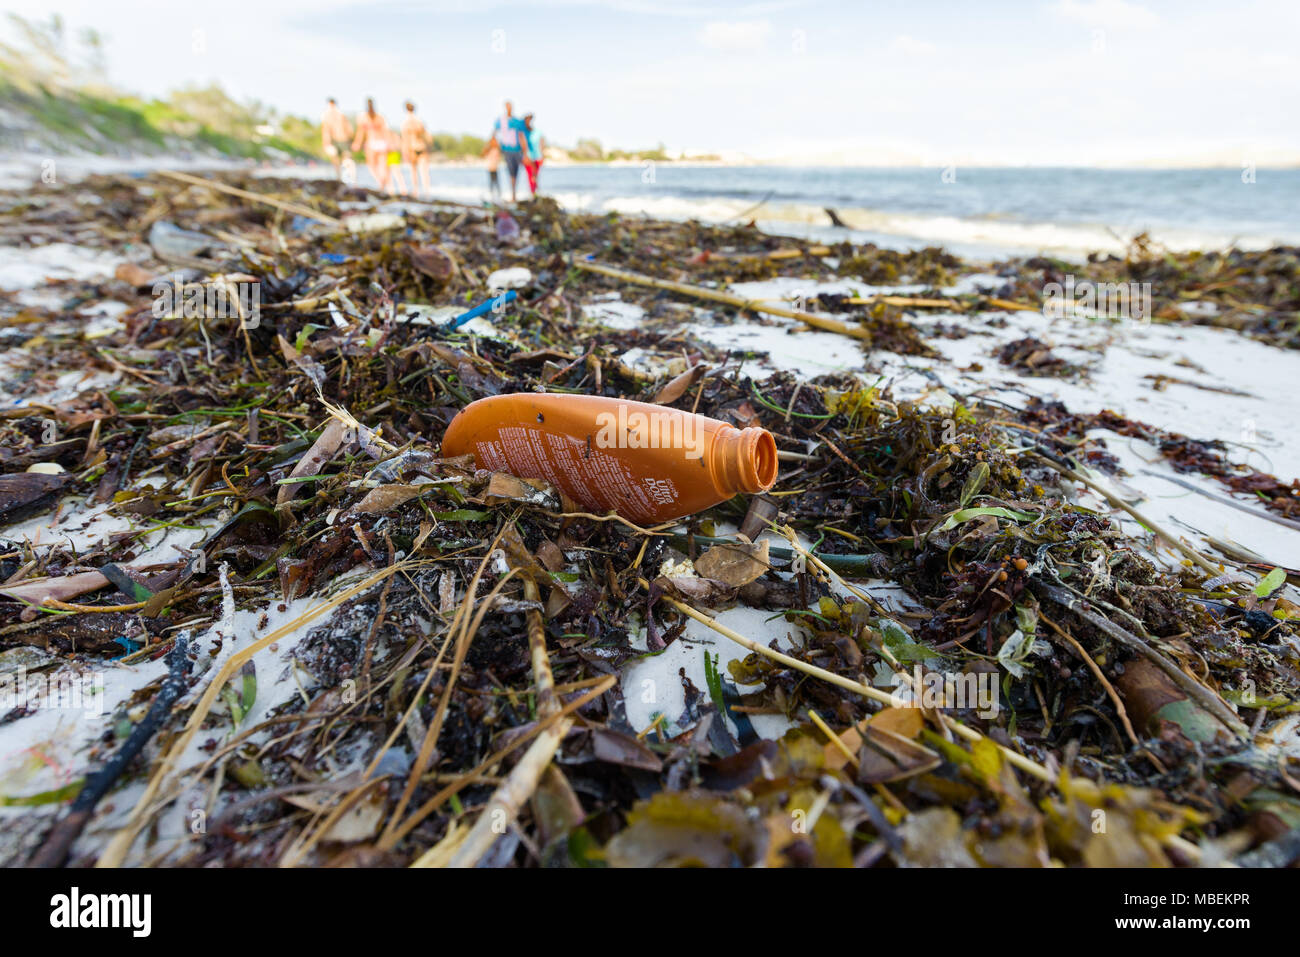 Plastic waste lies washed up on the shore of a white sand beach with people walking in the background - Stock Image